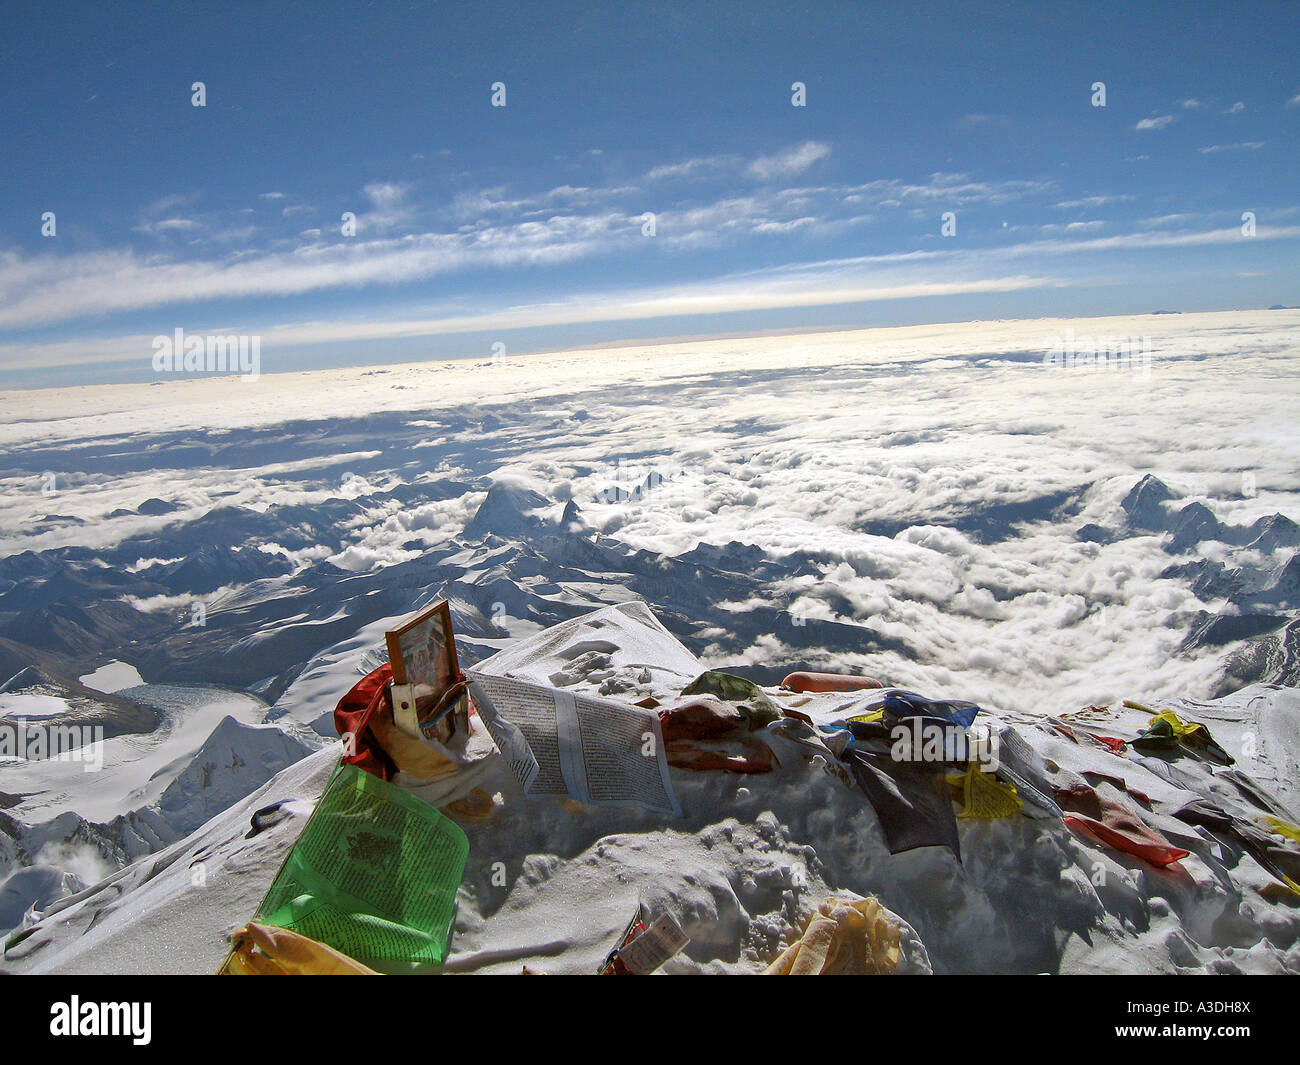 Himalaya Hamburg Photo Of Dalai Lama And Tibetan Praying Flags On The Summit Of